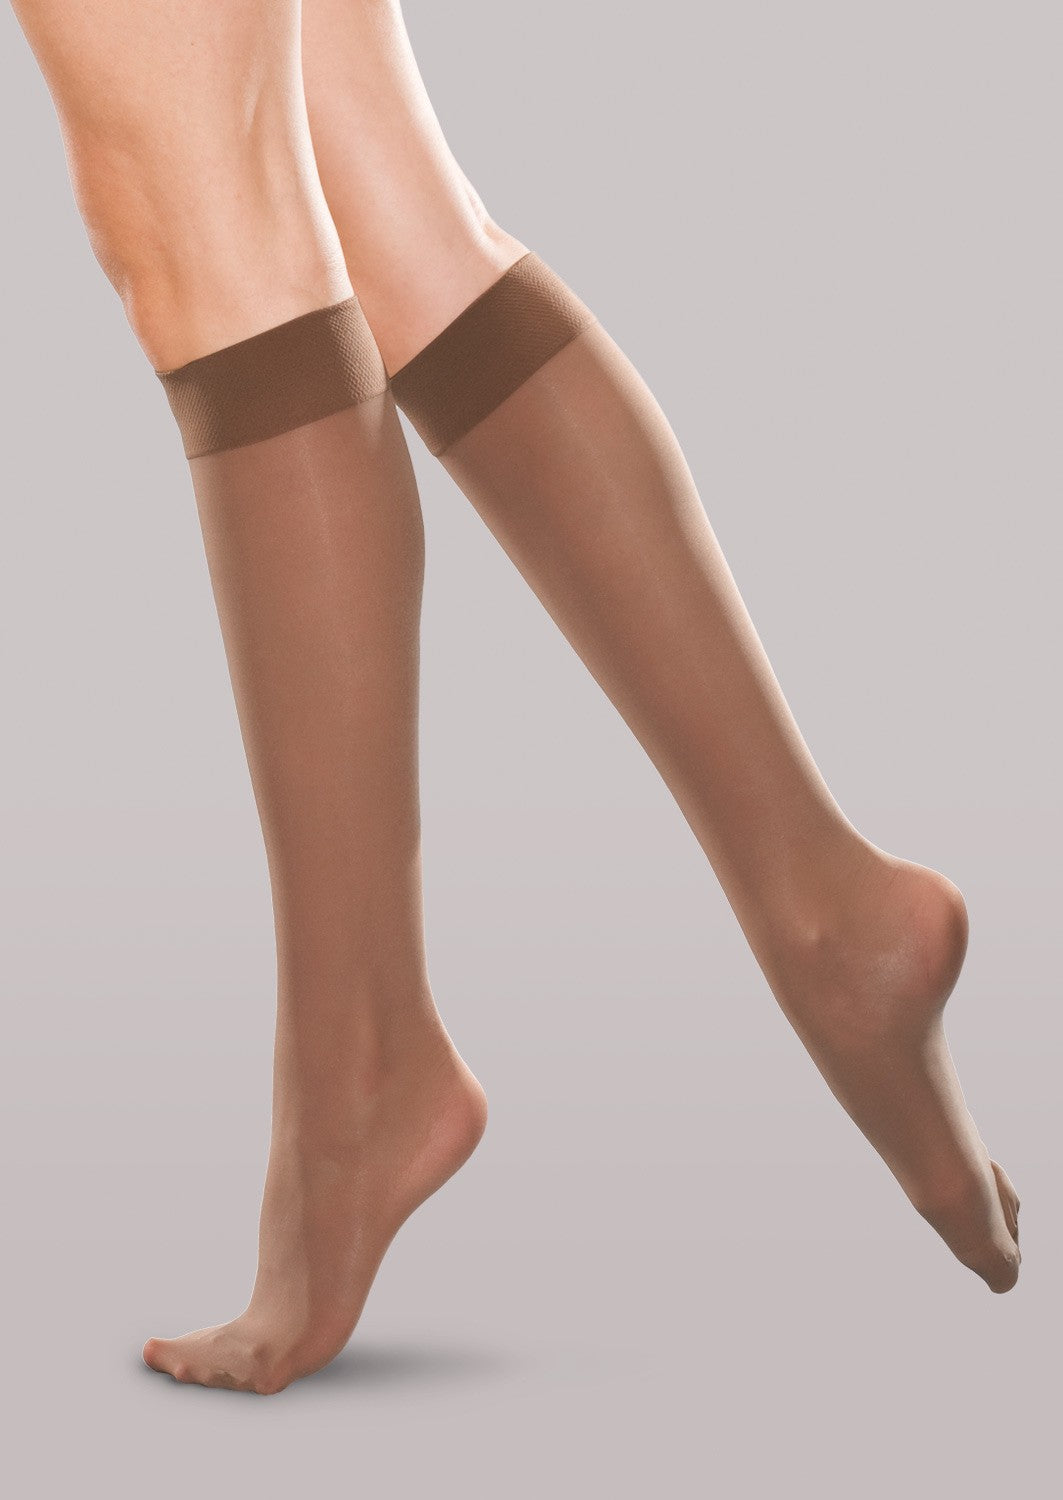 Charmaine Knee High Tights Pack of 2